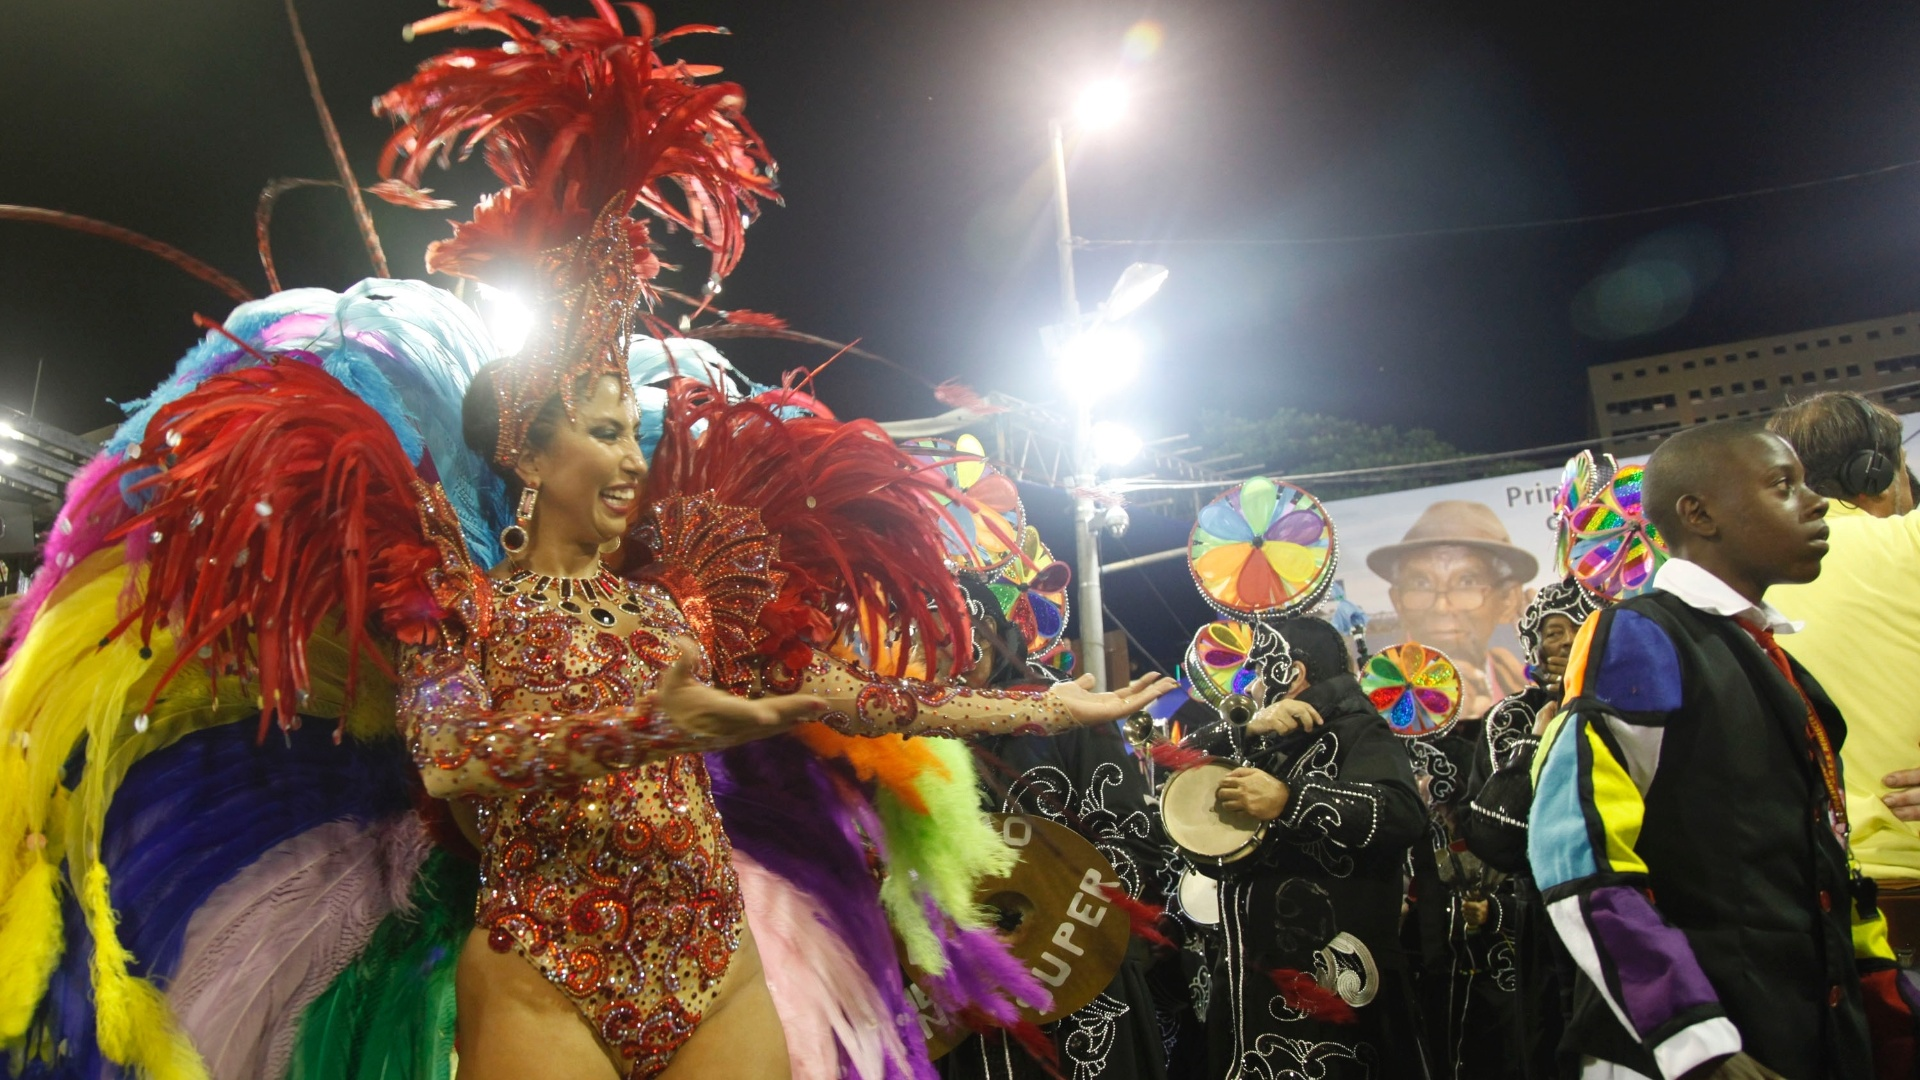 A rainha Patrcia Nery anima a bateria no desfile da Renascer de Jacarepagu na Sapuca, no Rio (19/2/12)